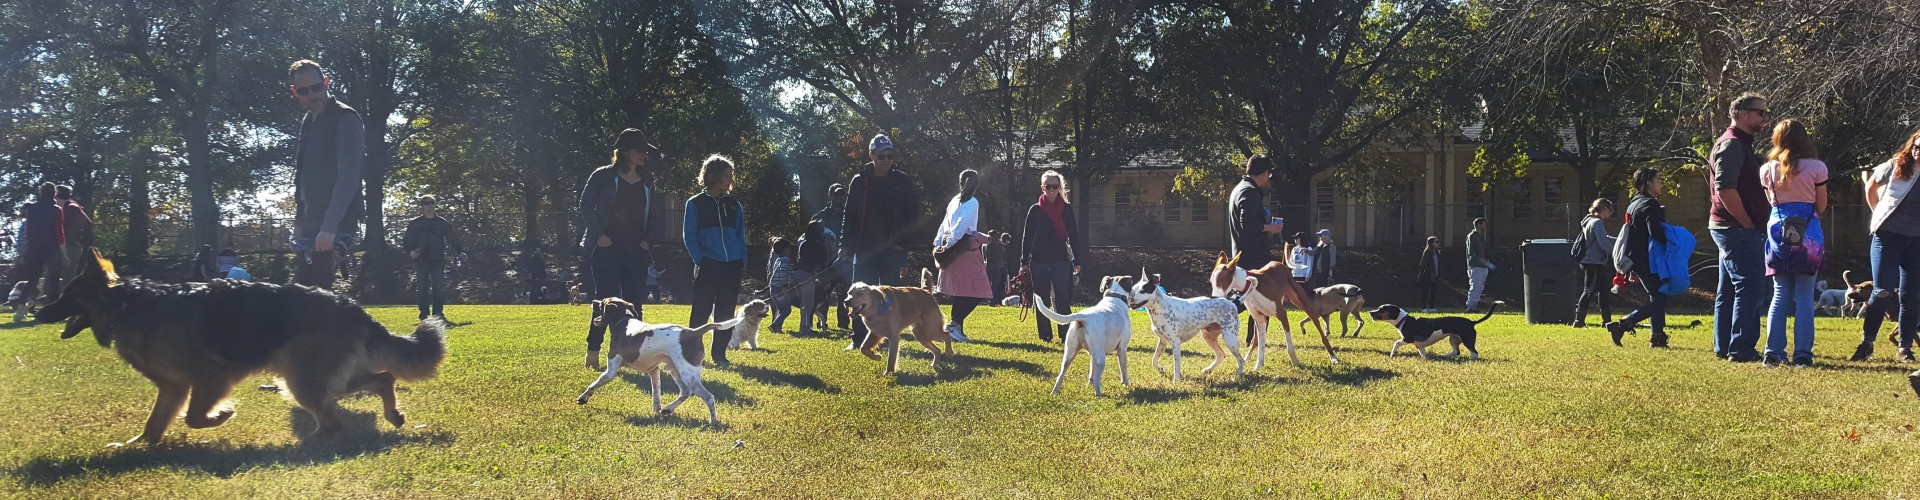 People and off-leash dogs at the Dix Park Dog Park